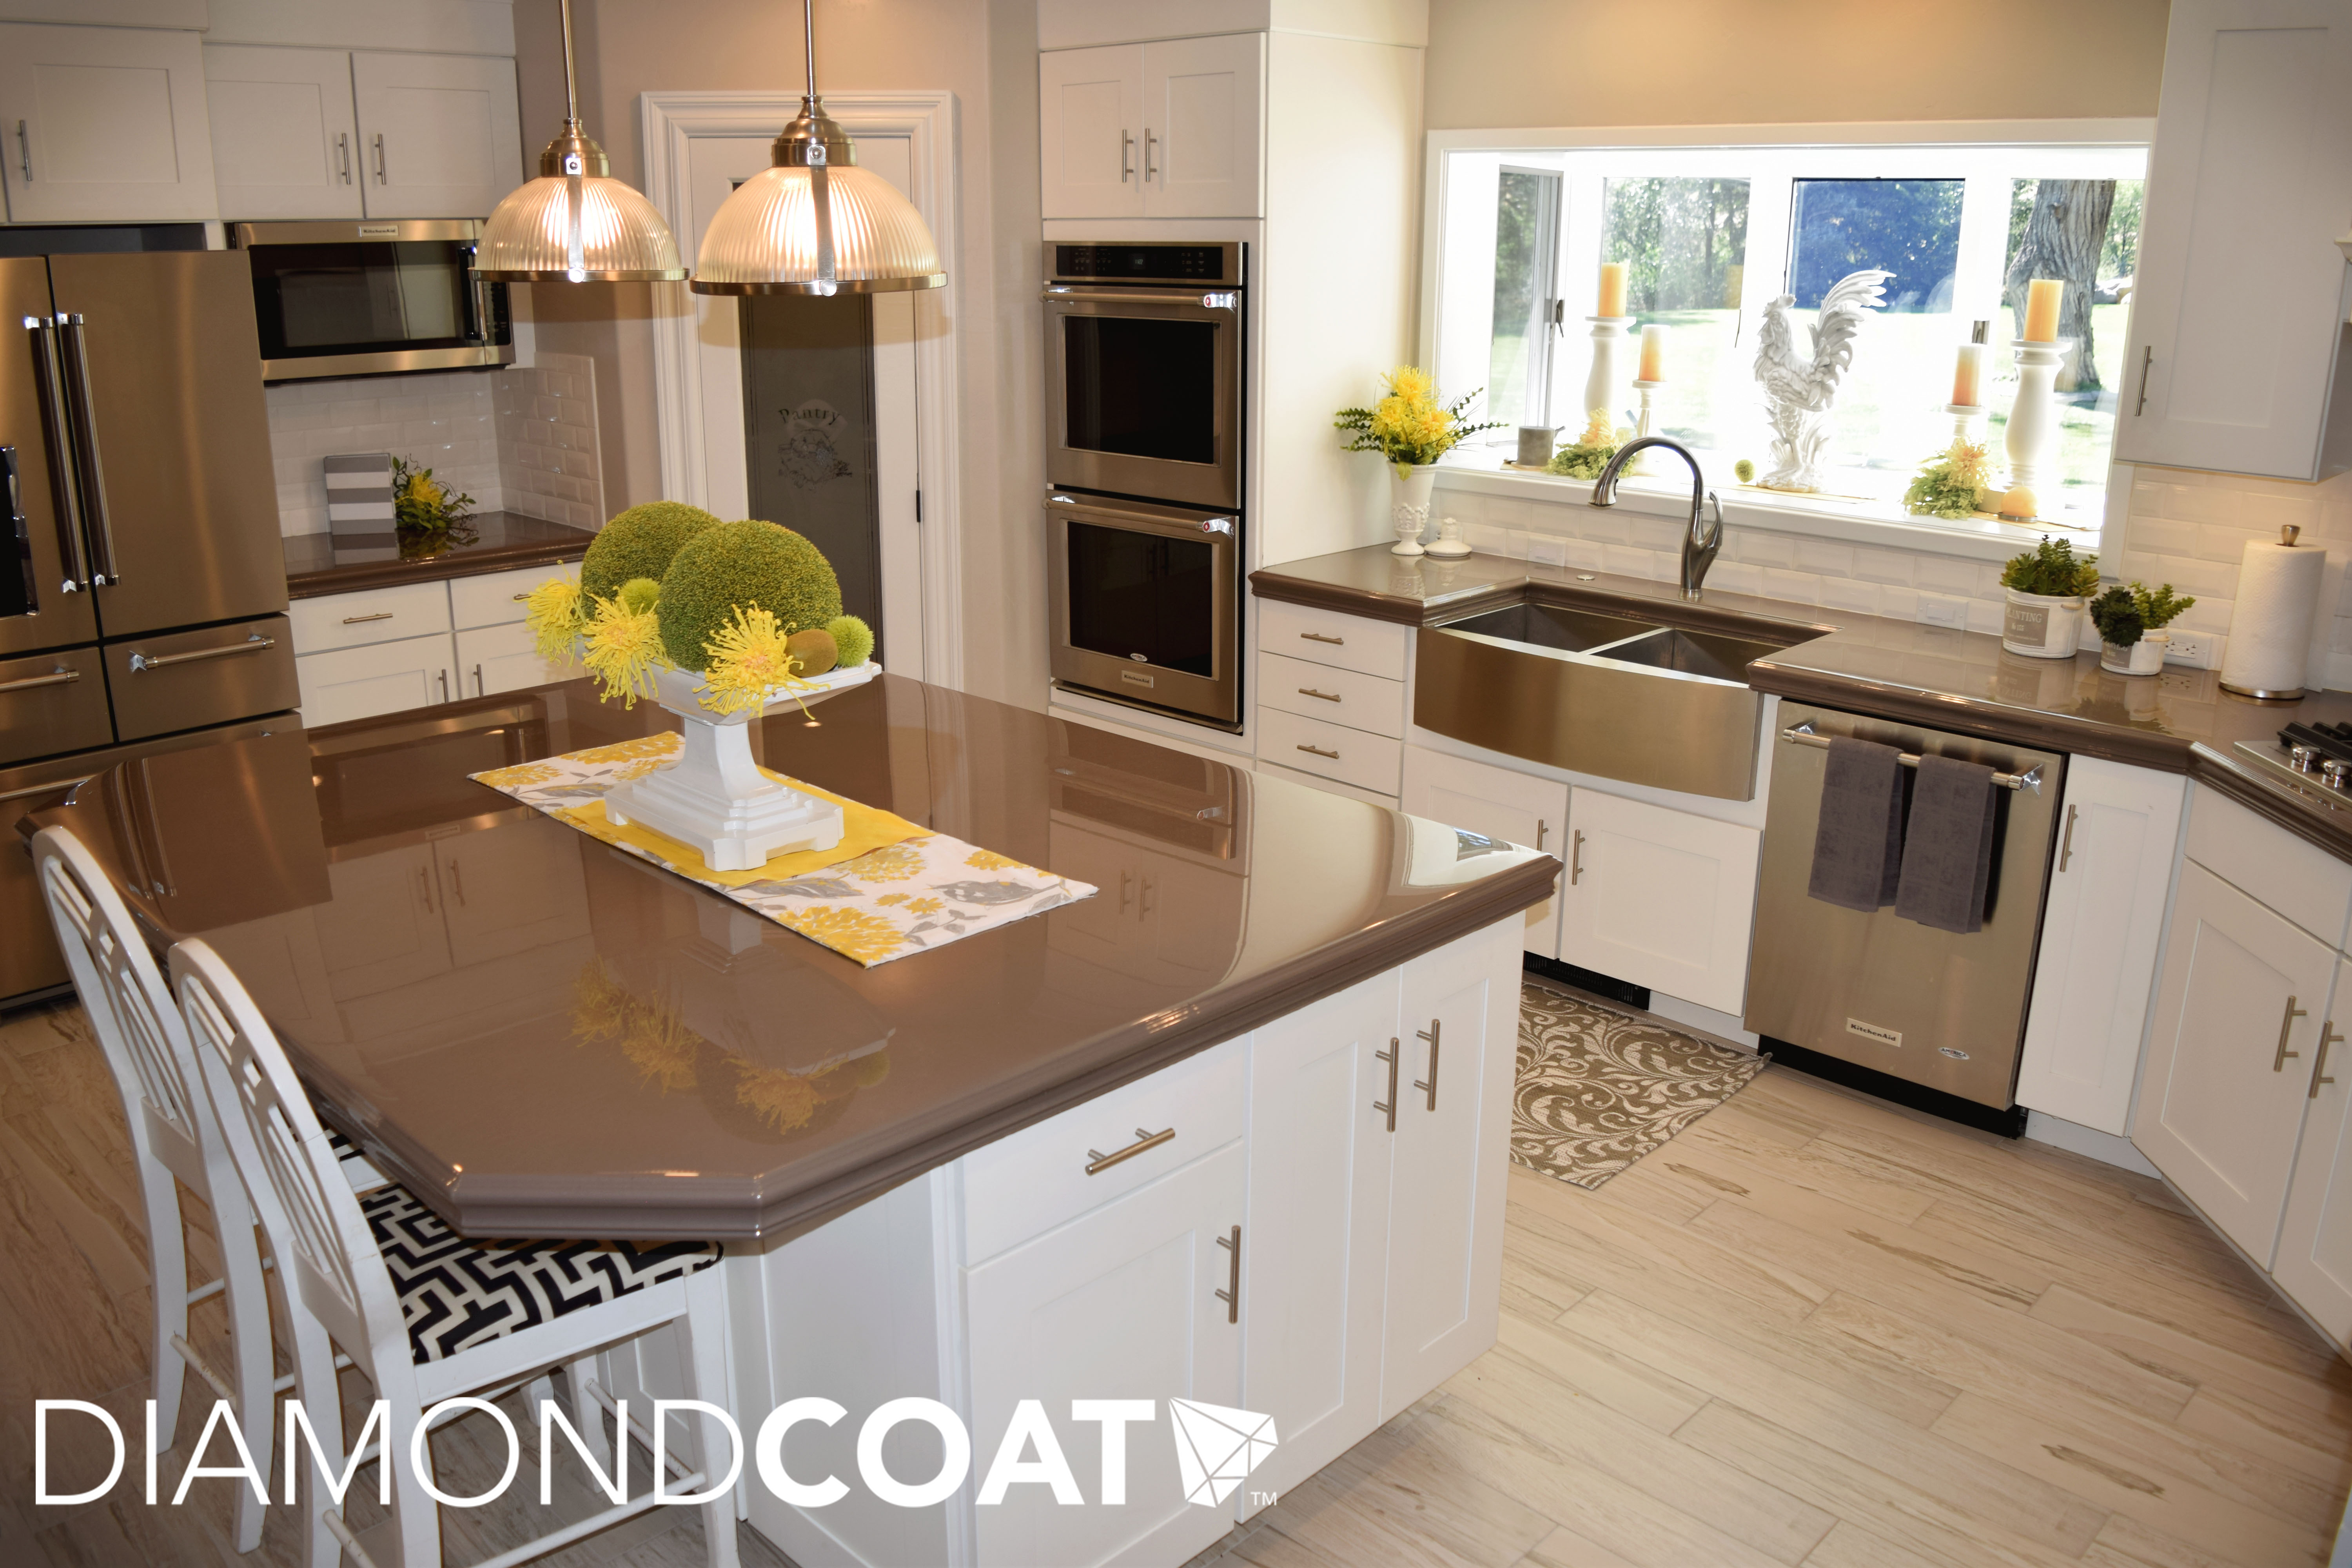 The Kitchen Trends Of 2018 2019 Will Require Plenty Of Epoxy Finishes Diamond Coat